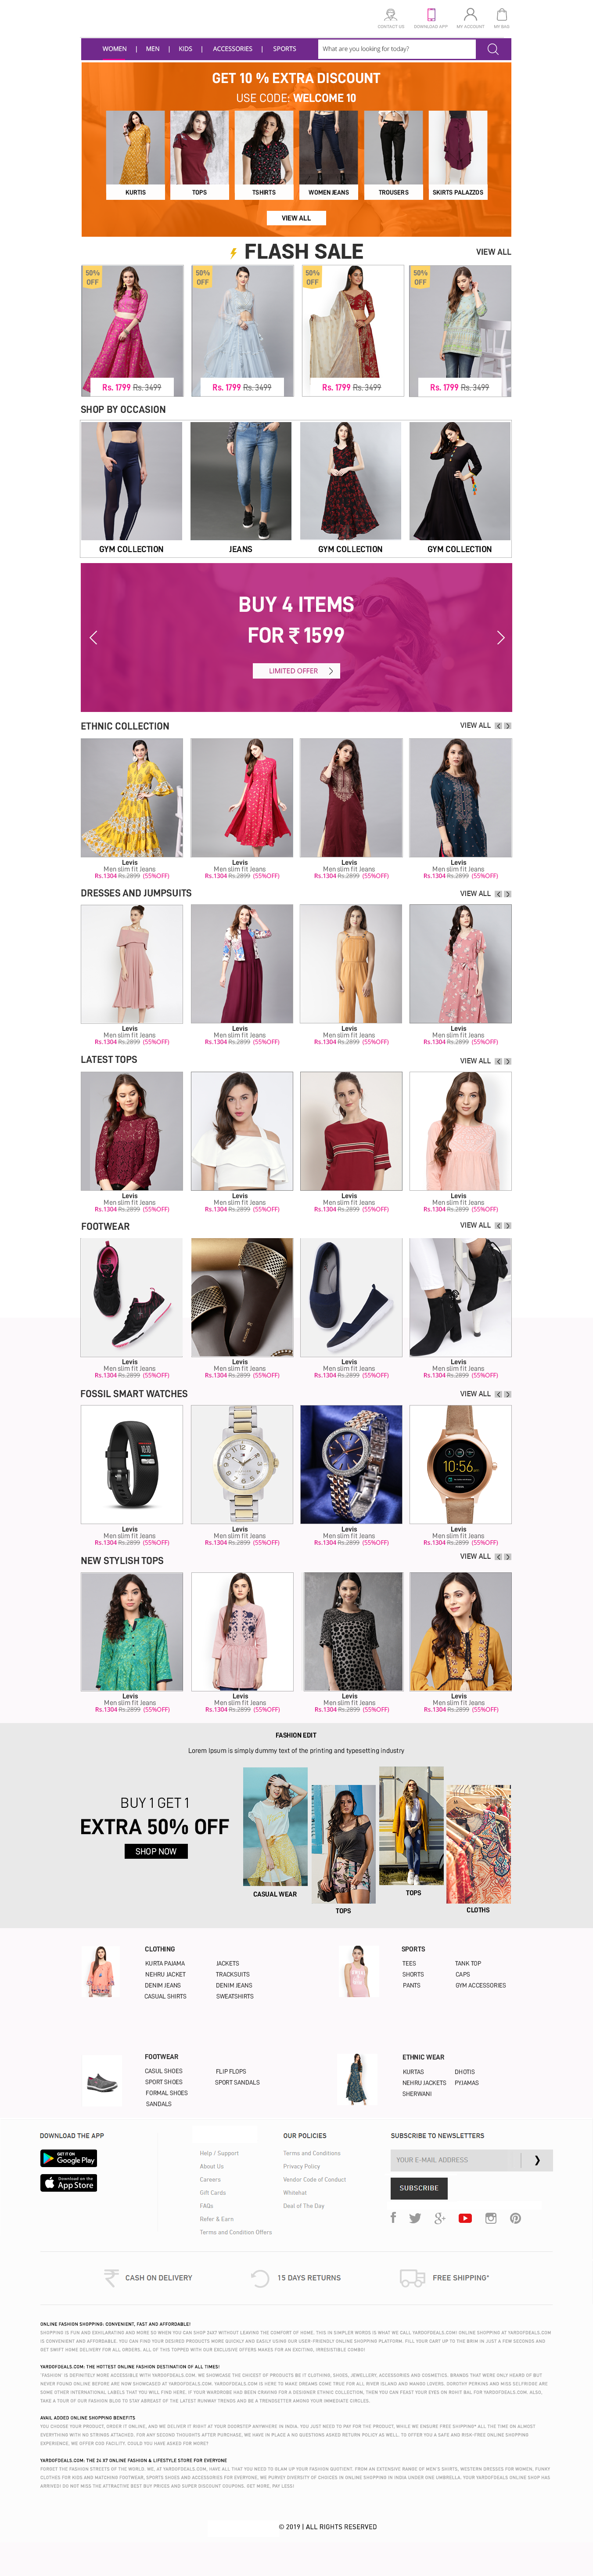 E-commerce page product listing and flash sale